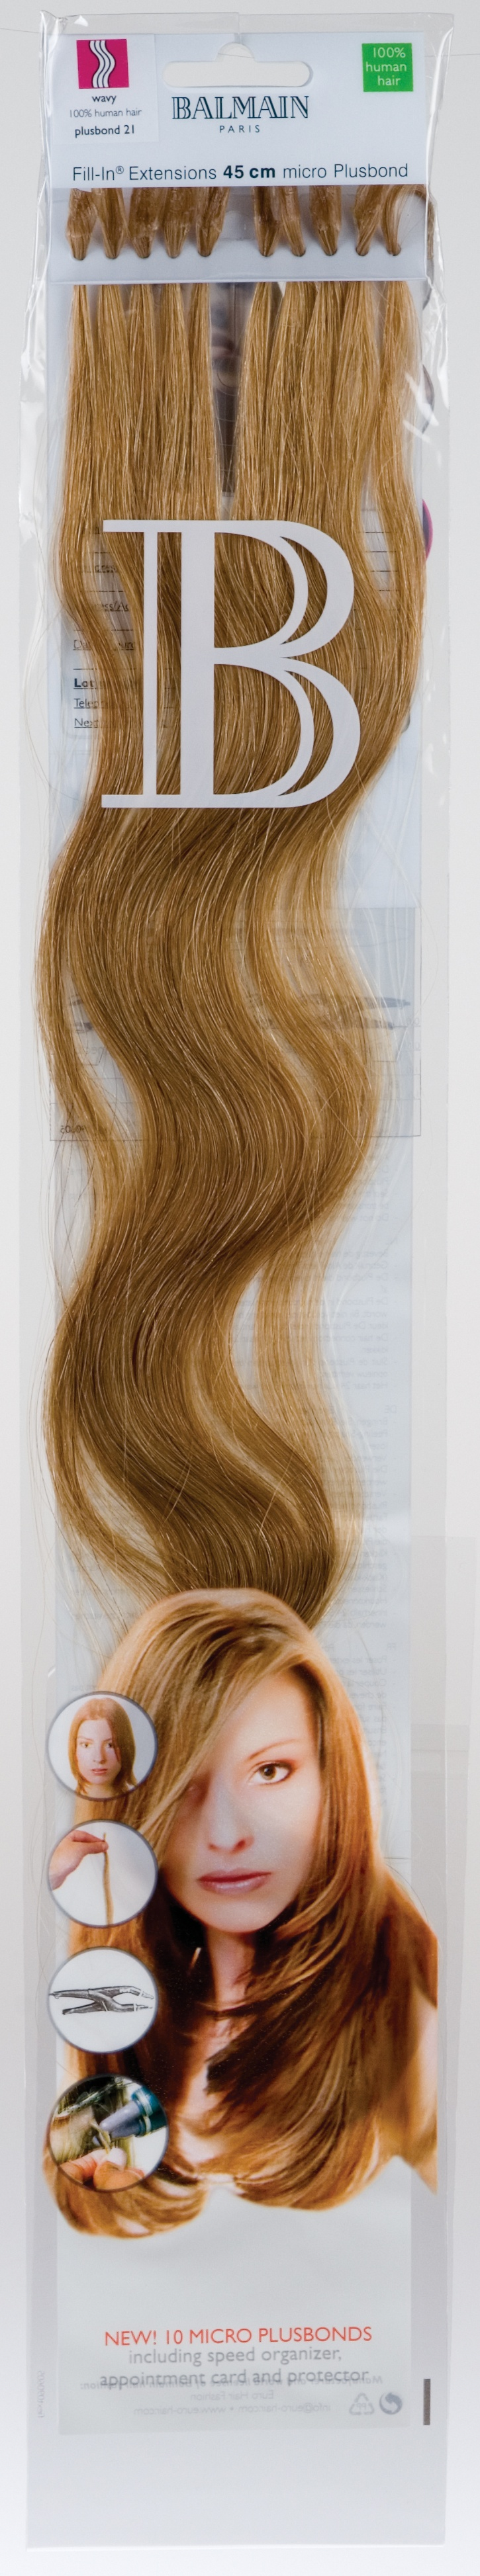 Fill-in Extensions of Balmain Hair